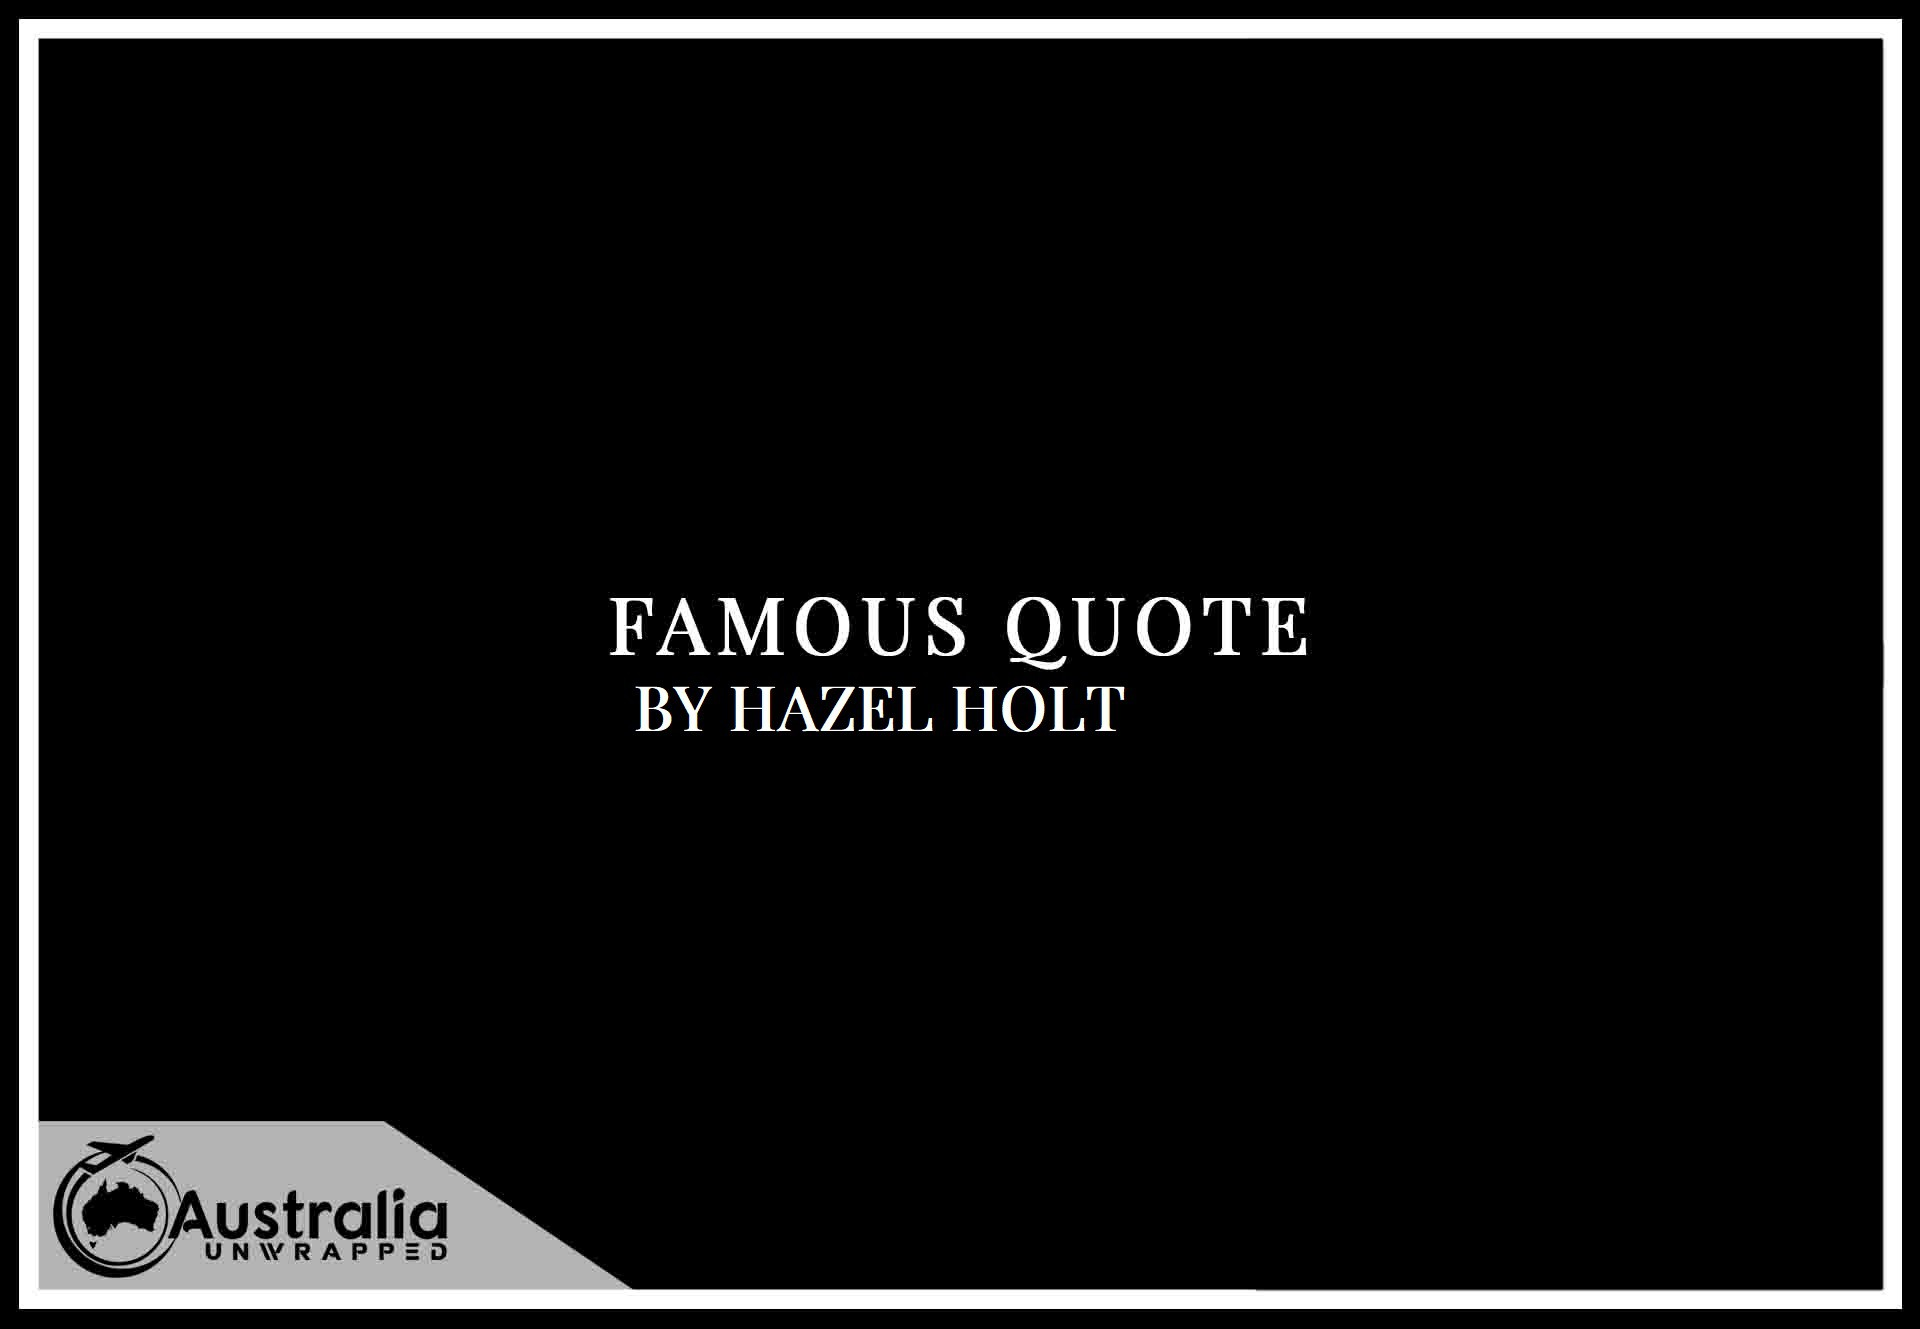 Top 1 Famous Quotes by Author Hazel Holt